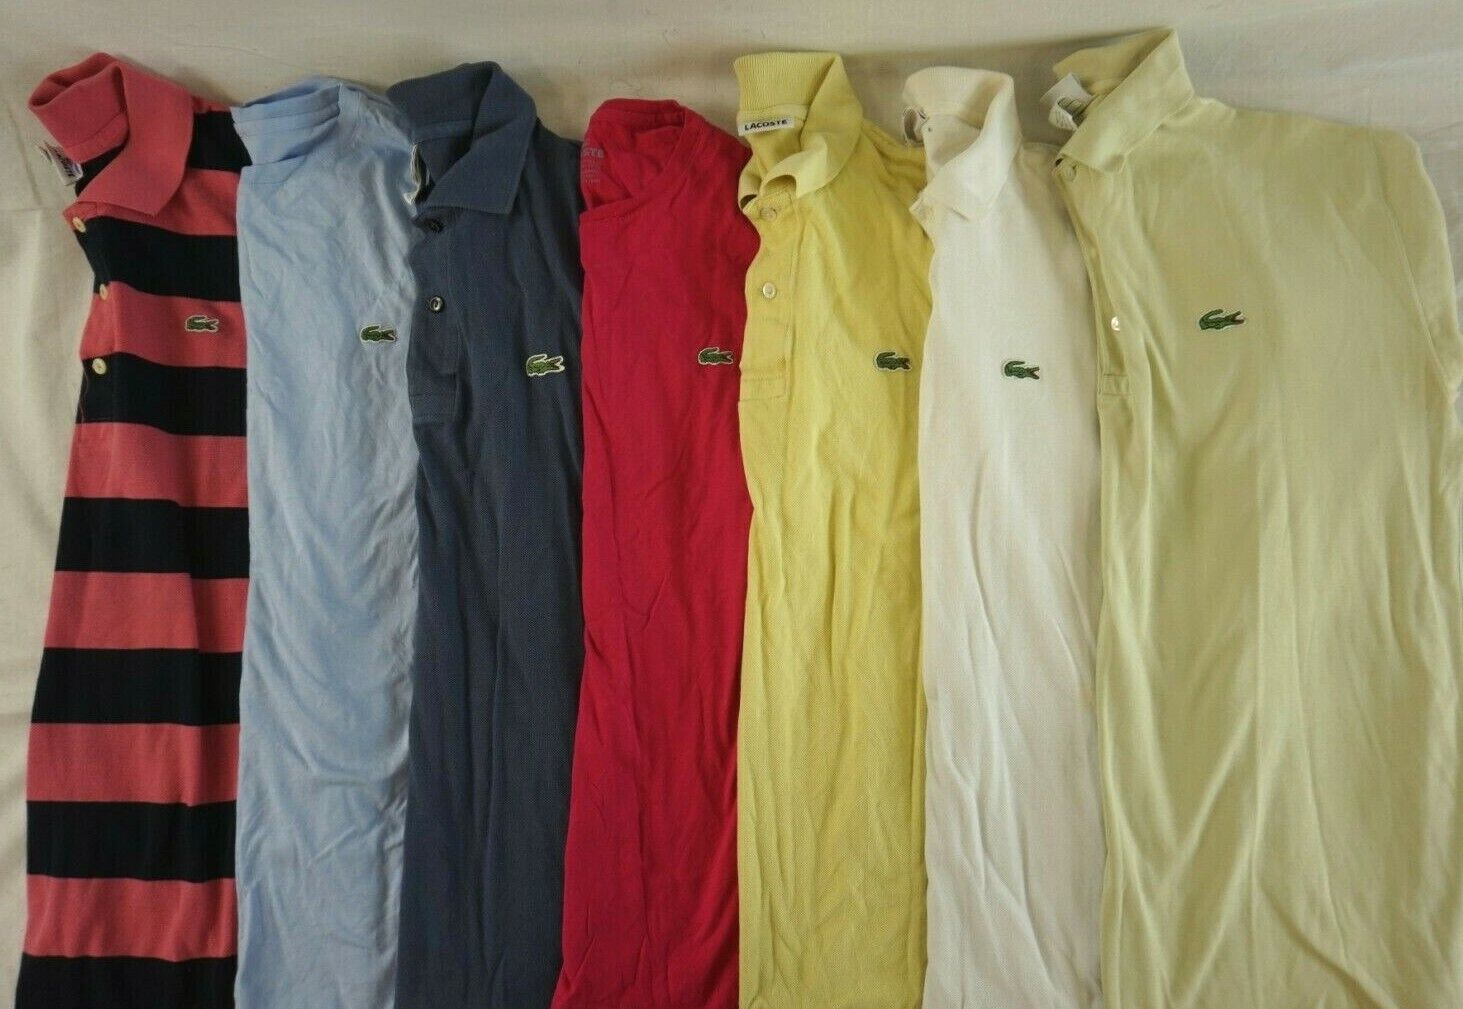 LACOSTE Lot of 7 Men's Short Sleeve Polo Shirts 5   (US LG)